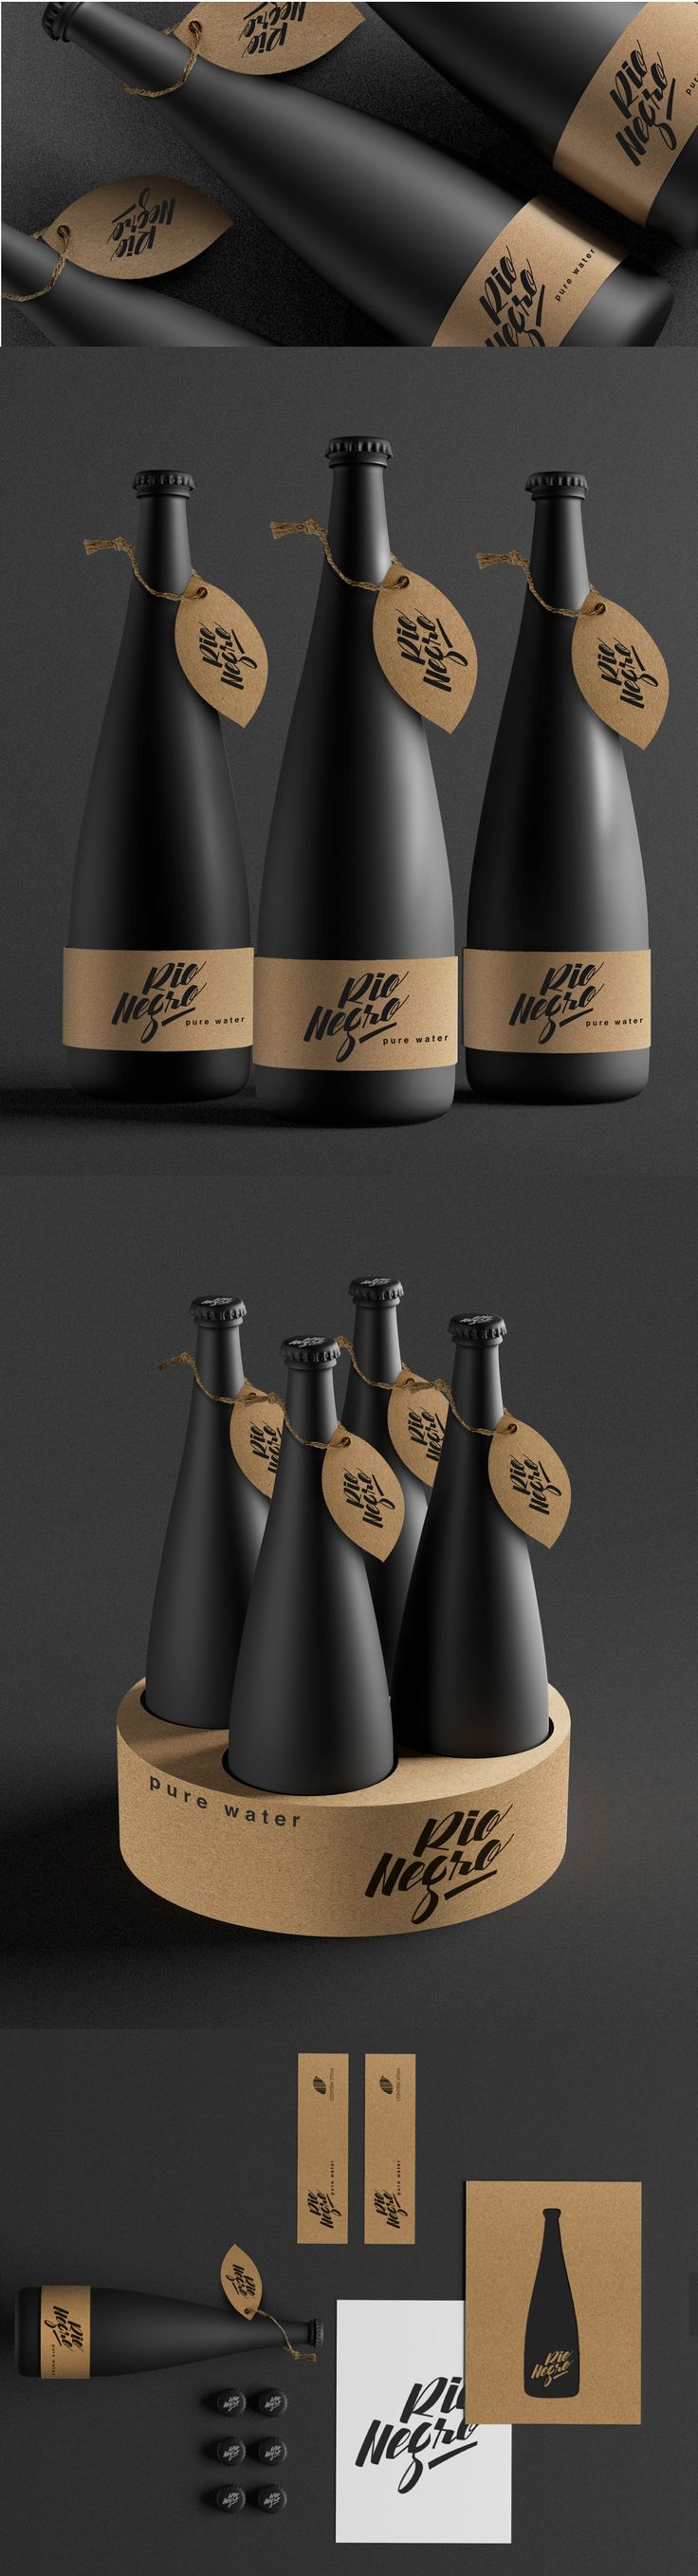 Rio Negro Water matte bottles of water are coated in black and labeled with cardboard